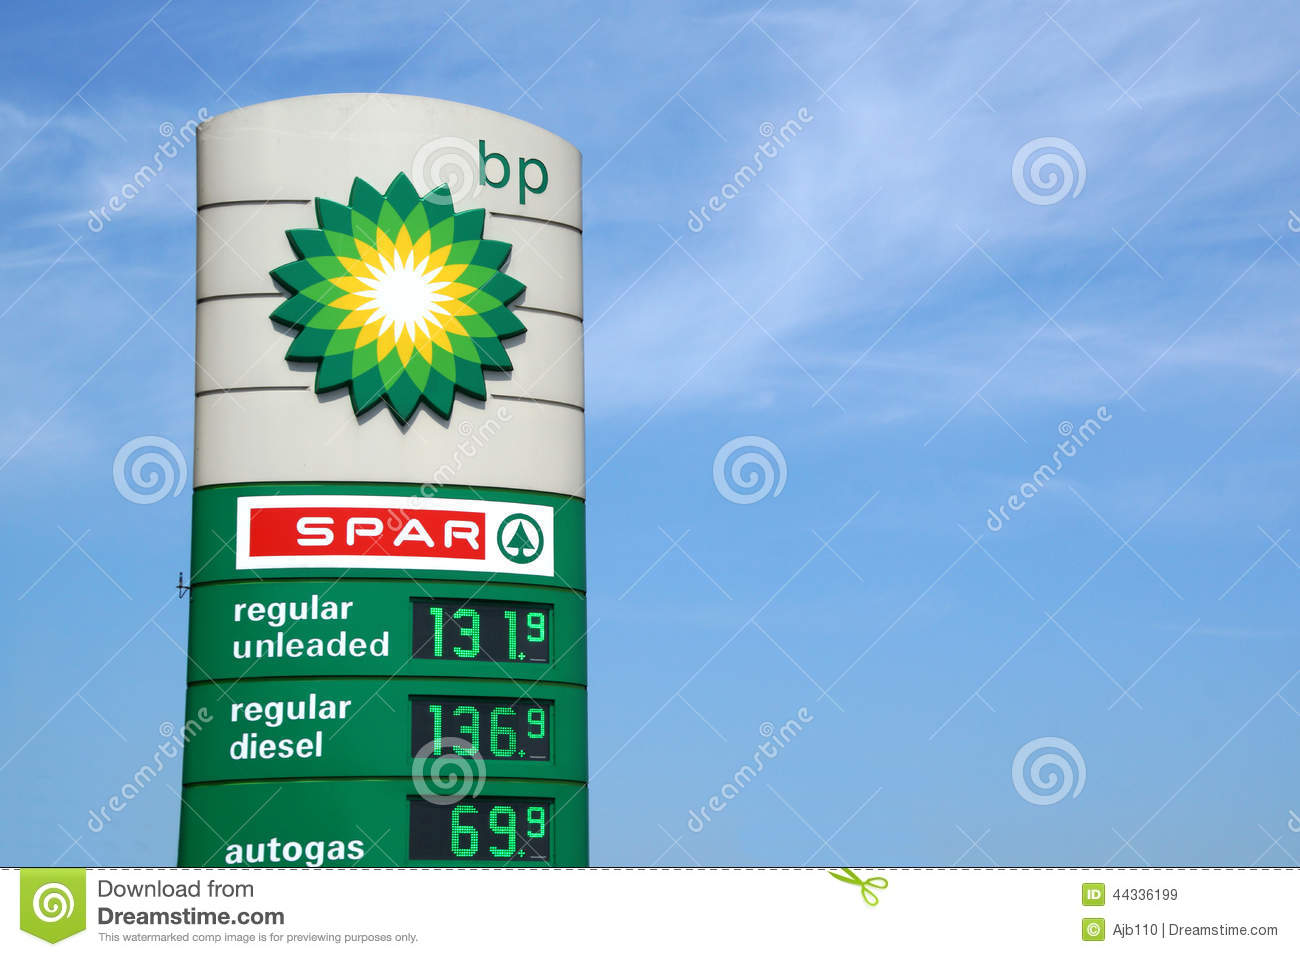 Petrol Price Sign Garage Board Showing Cost Fuel Picture Good To Show Cost Motoring Economy on Diesel Fuel Filters